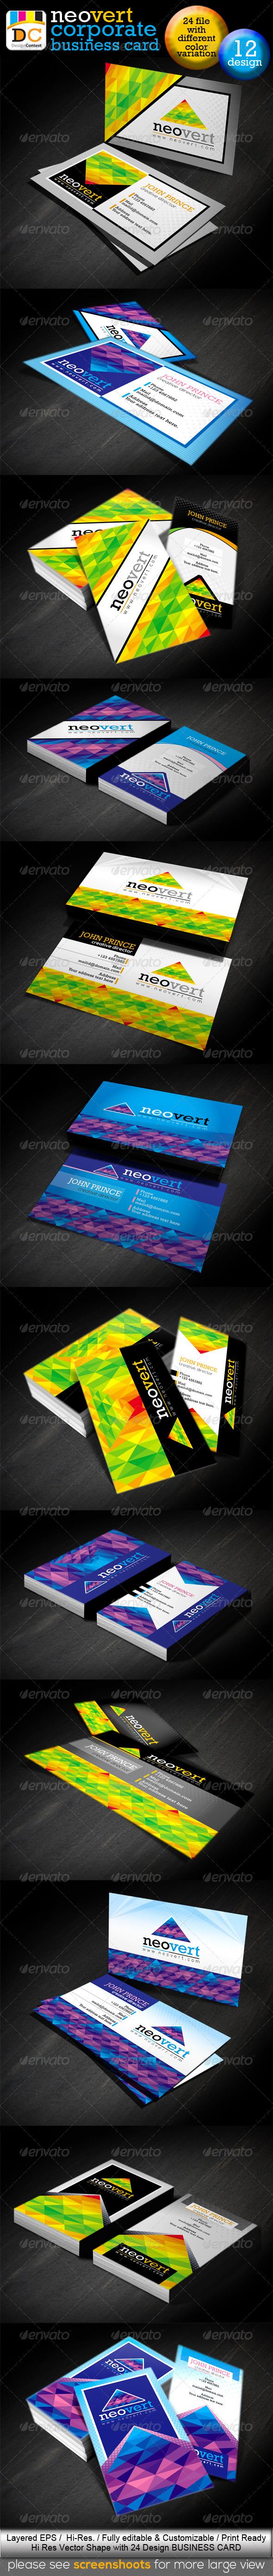 NeoVert_Corporate Creative Business Cards - Corporate Business Cards